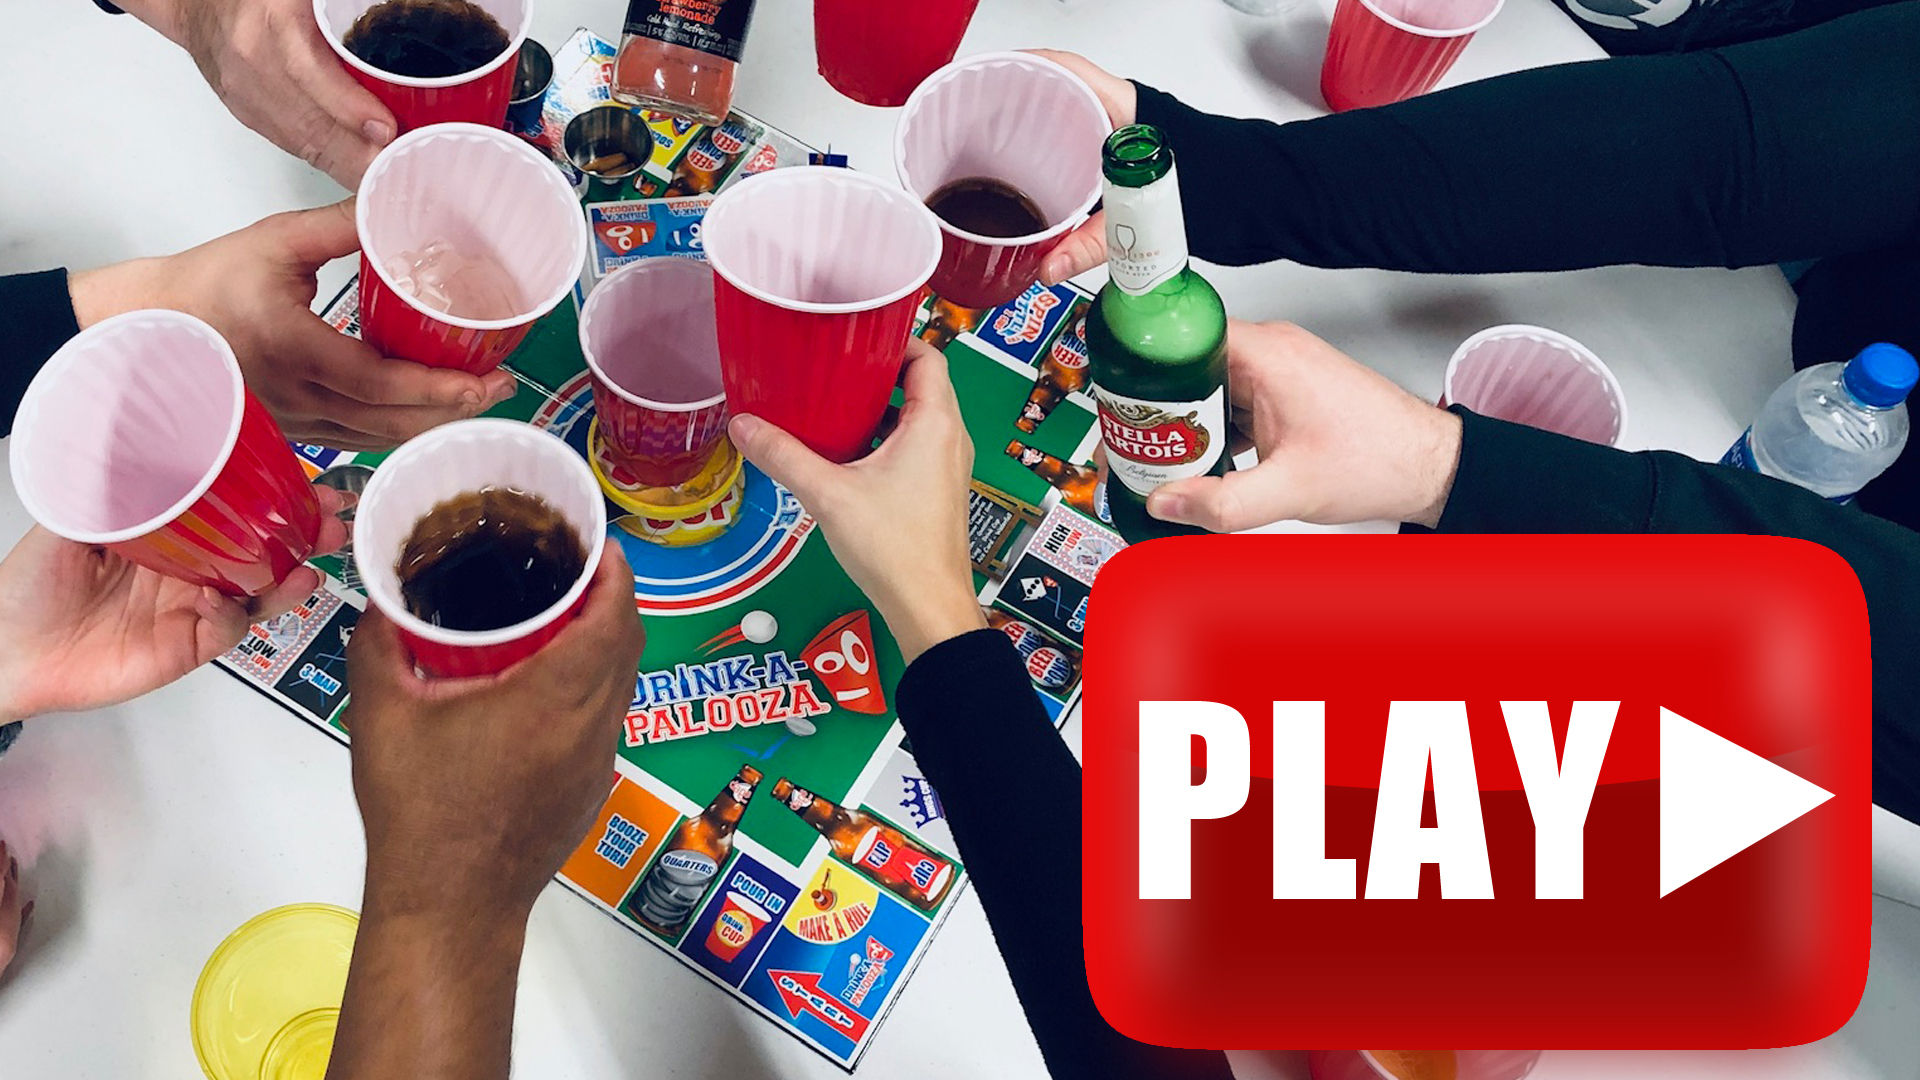 DRINK-A-PALOOZA Board Game: Fun Drinking Games for Adults ...